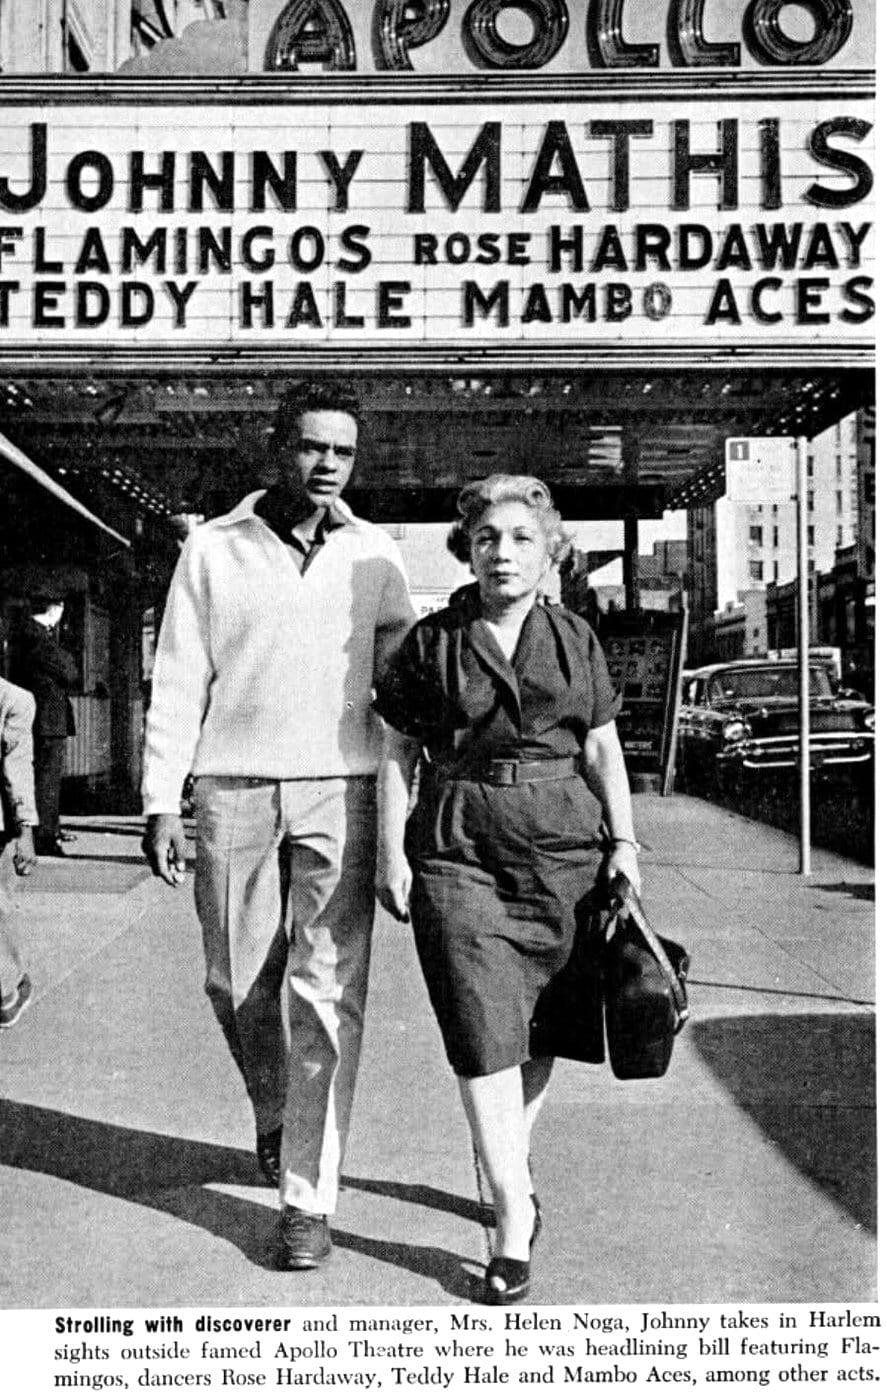 Johnny Mathis in front of the legendary Apollo Theater, with former manager Helen Noga in 1965